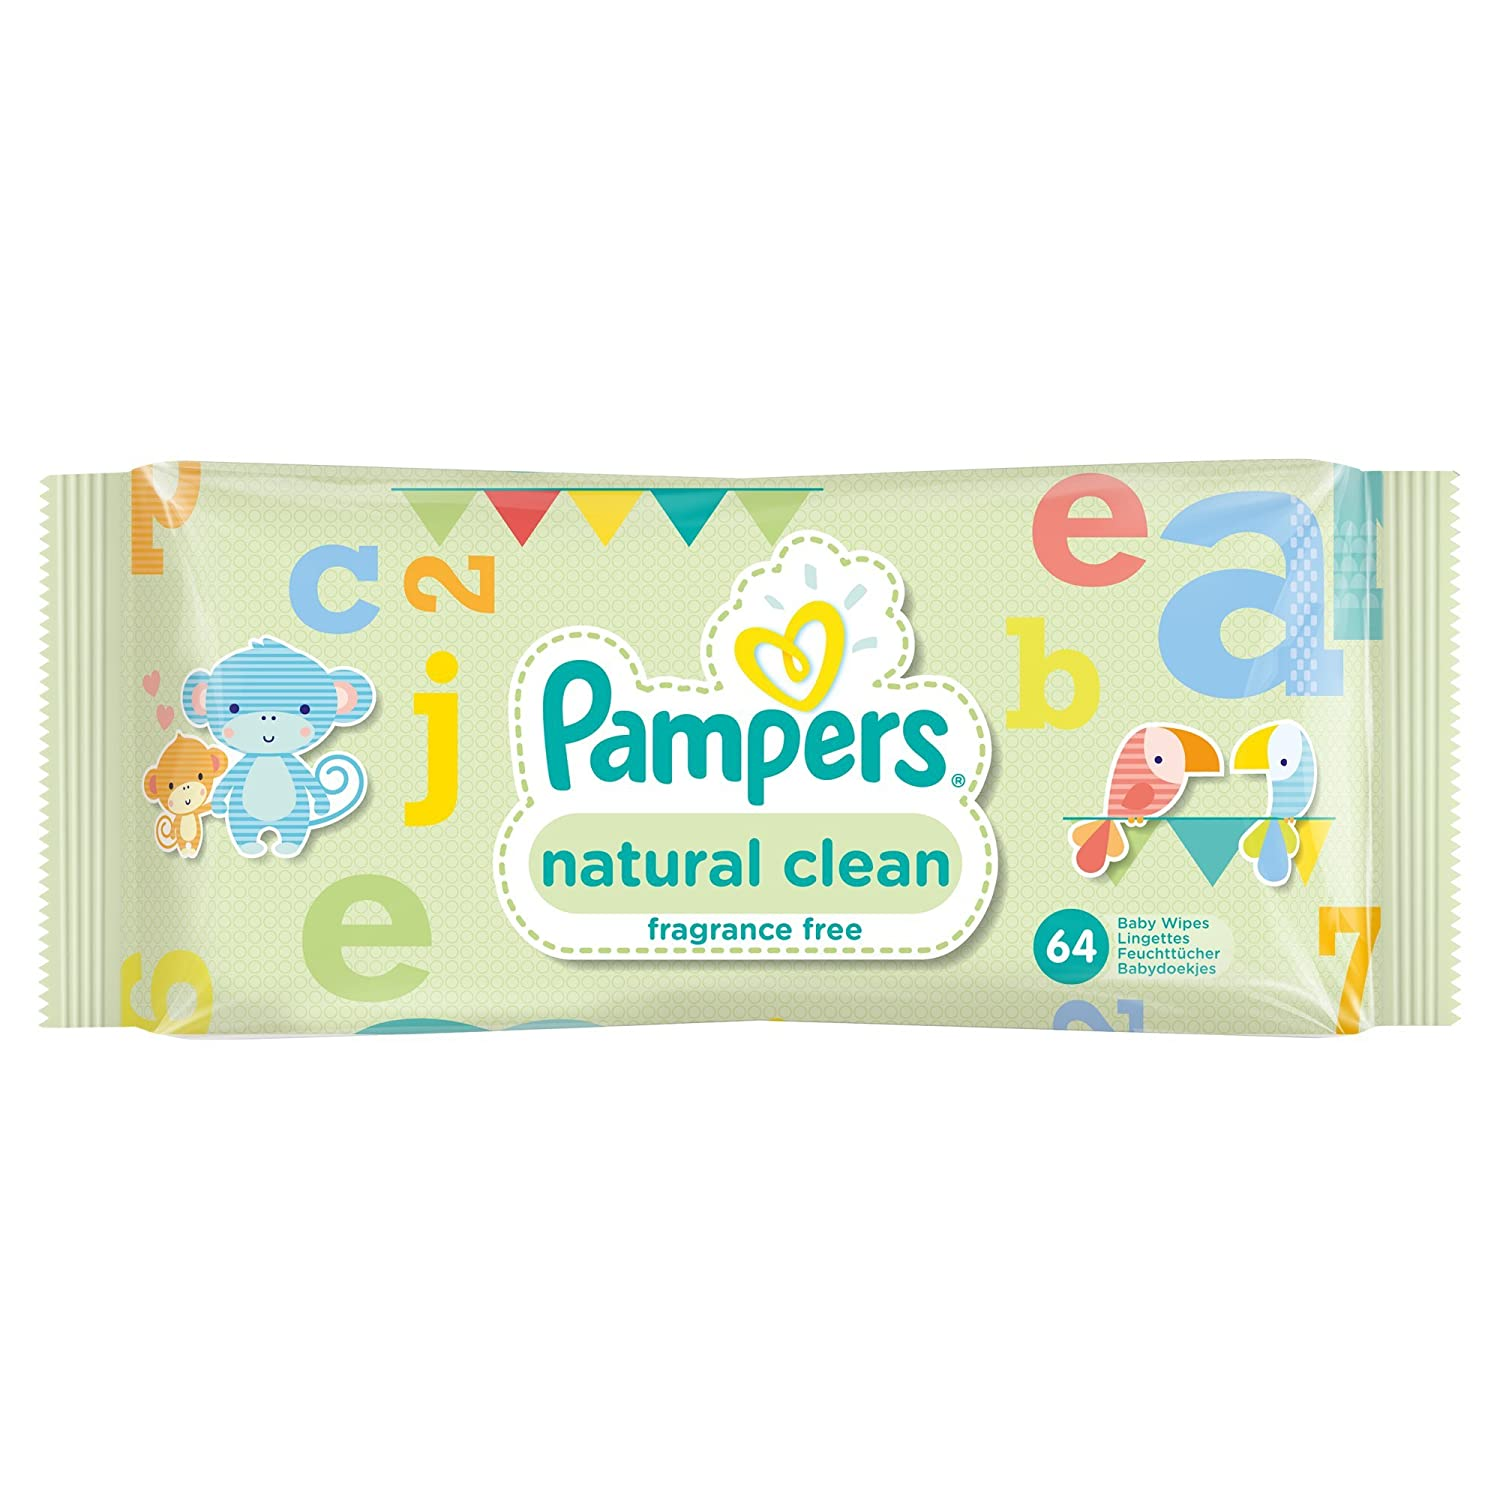 Biodegradable and Unfragranced Childs Farm Baby Wipes 12 Packs 768 Wipes Total